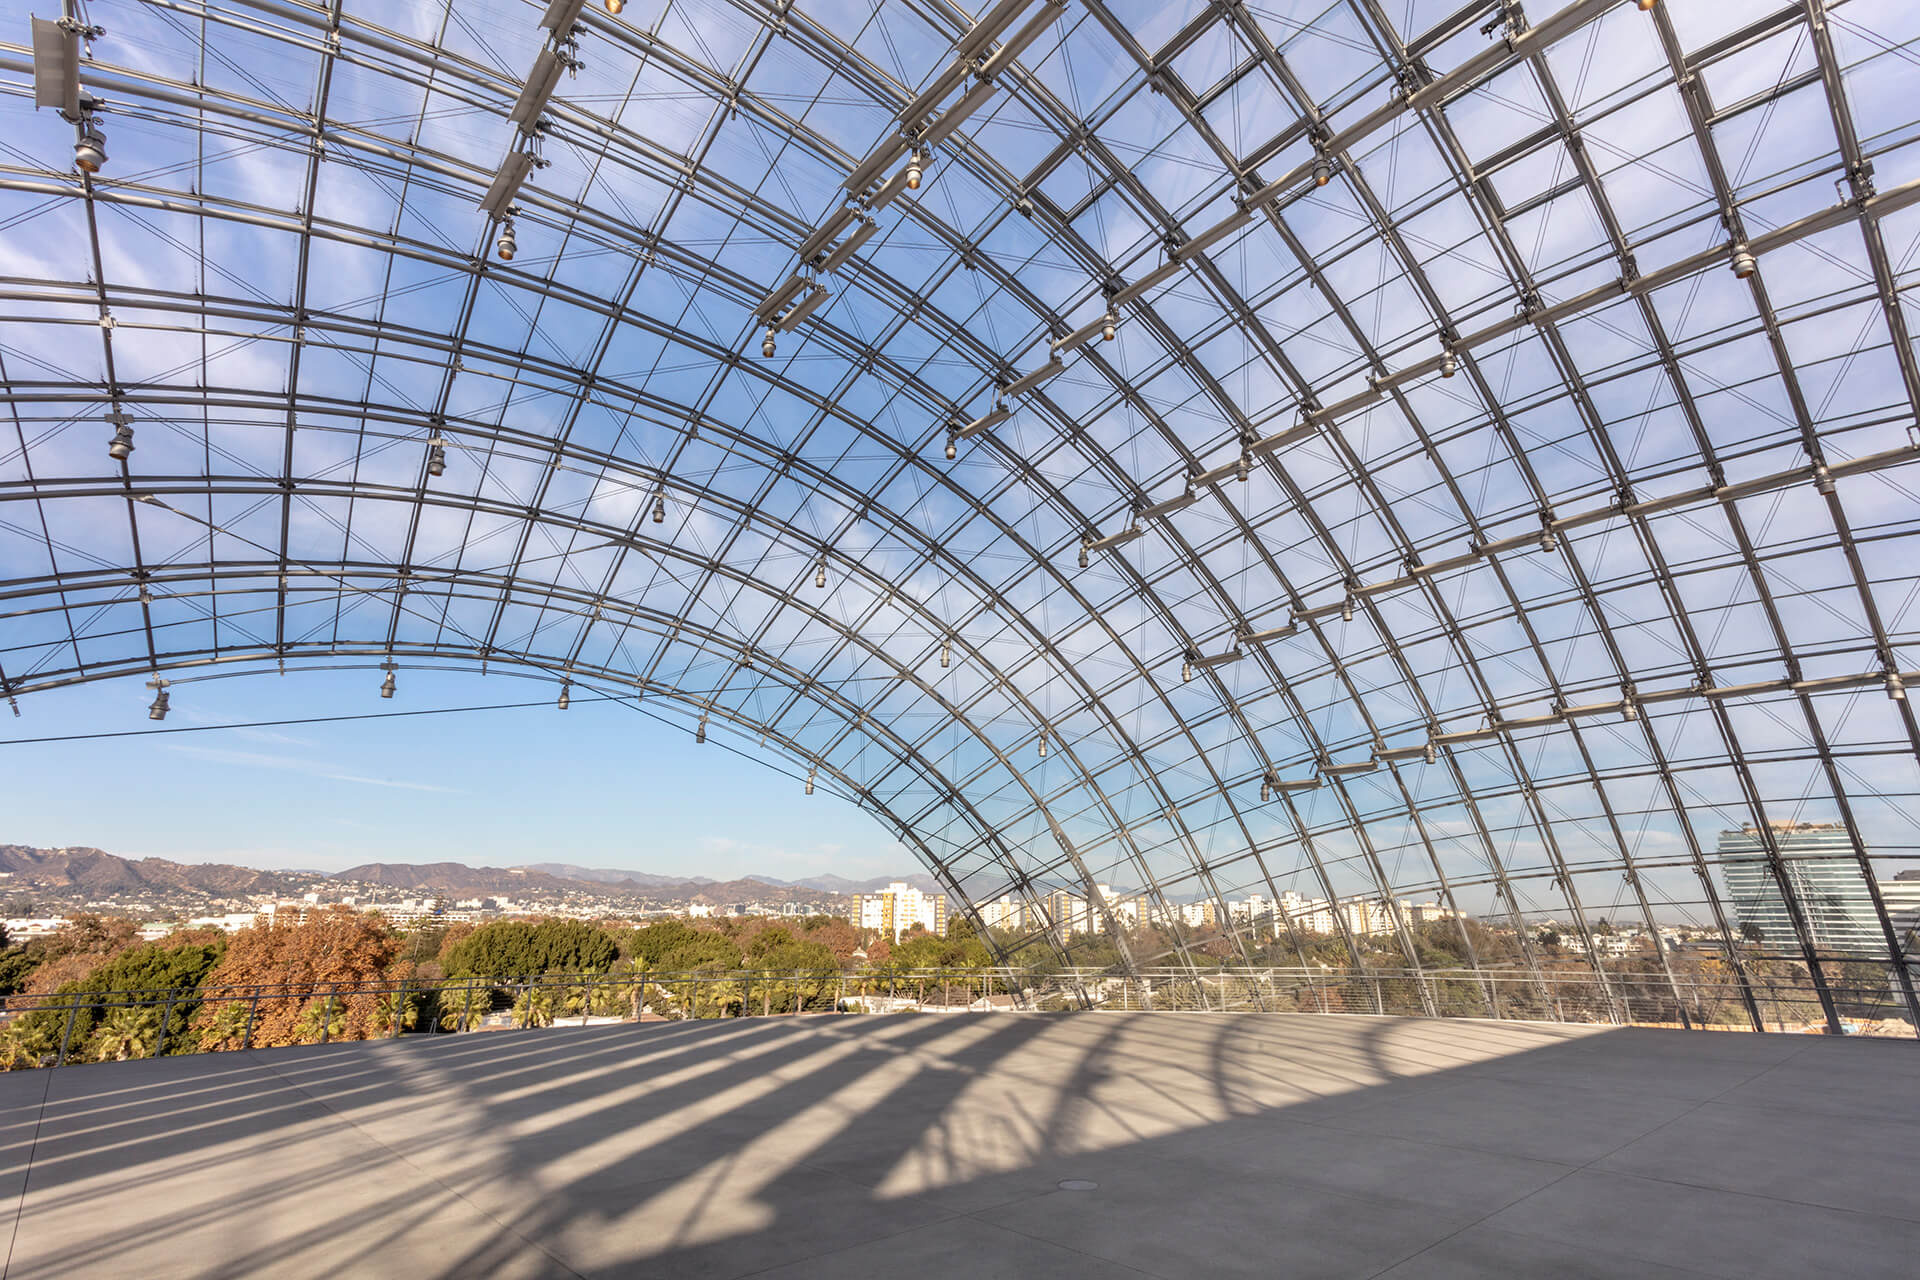 Glass rooftop on the new spherical building | Academy Museum of Motion Pictures | Renzo Piano Building Workshop | STIRworld